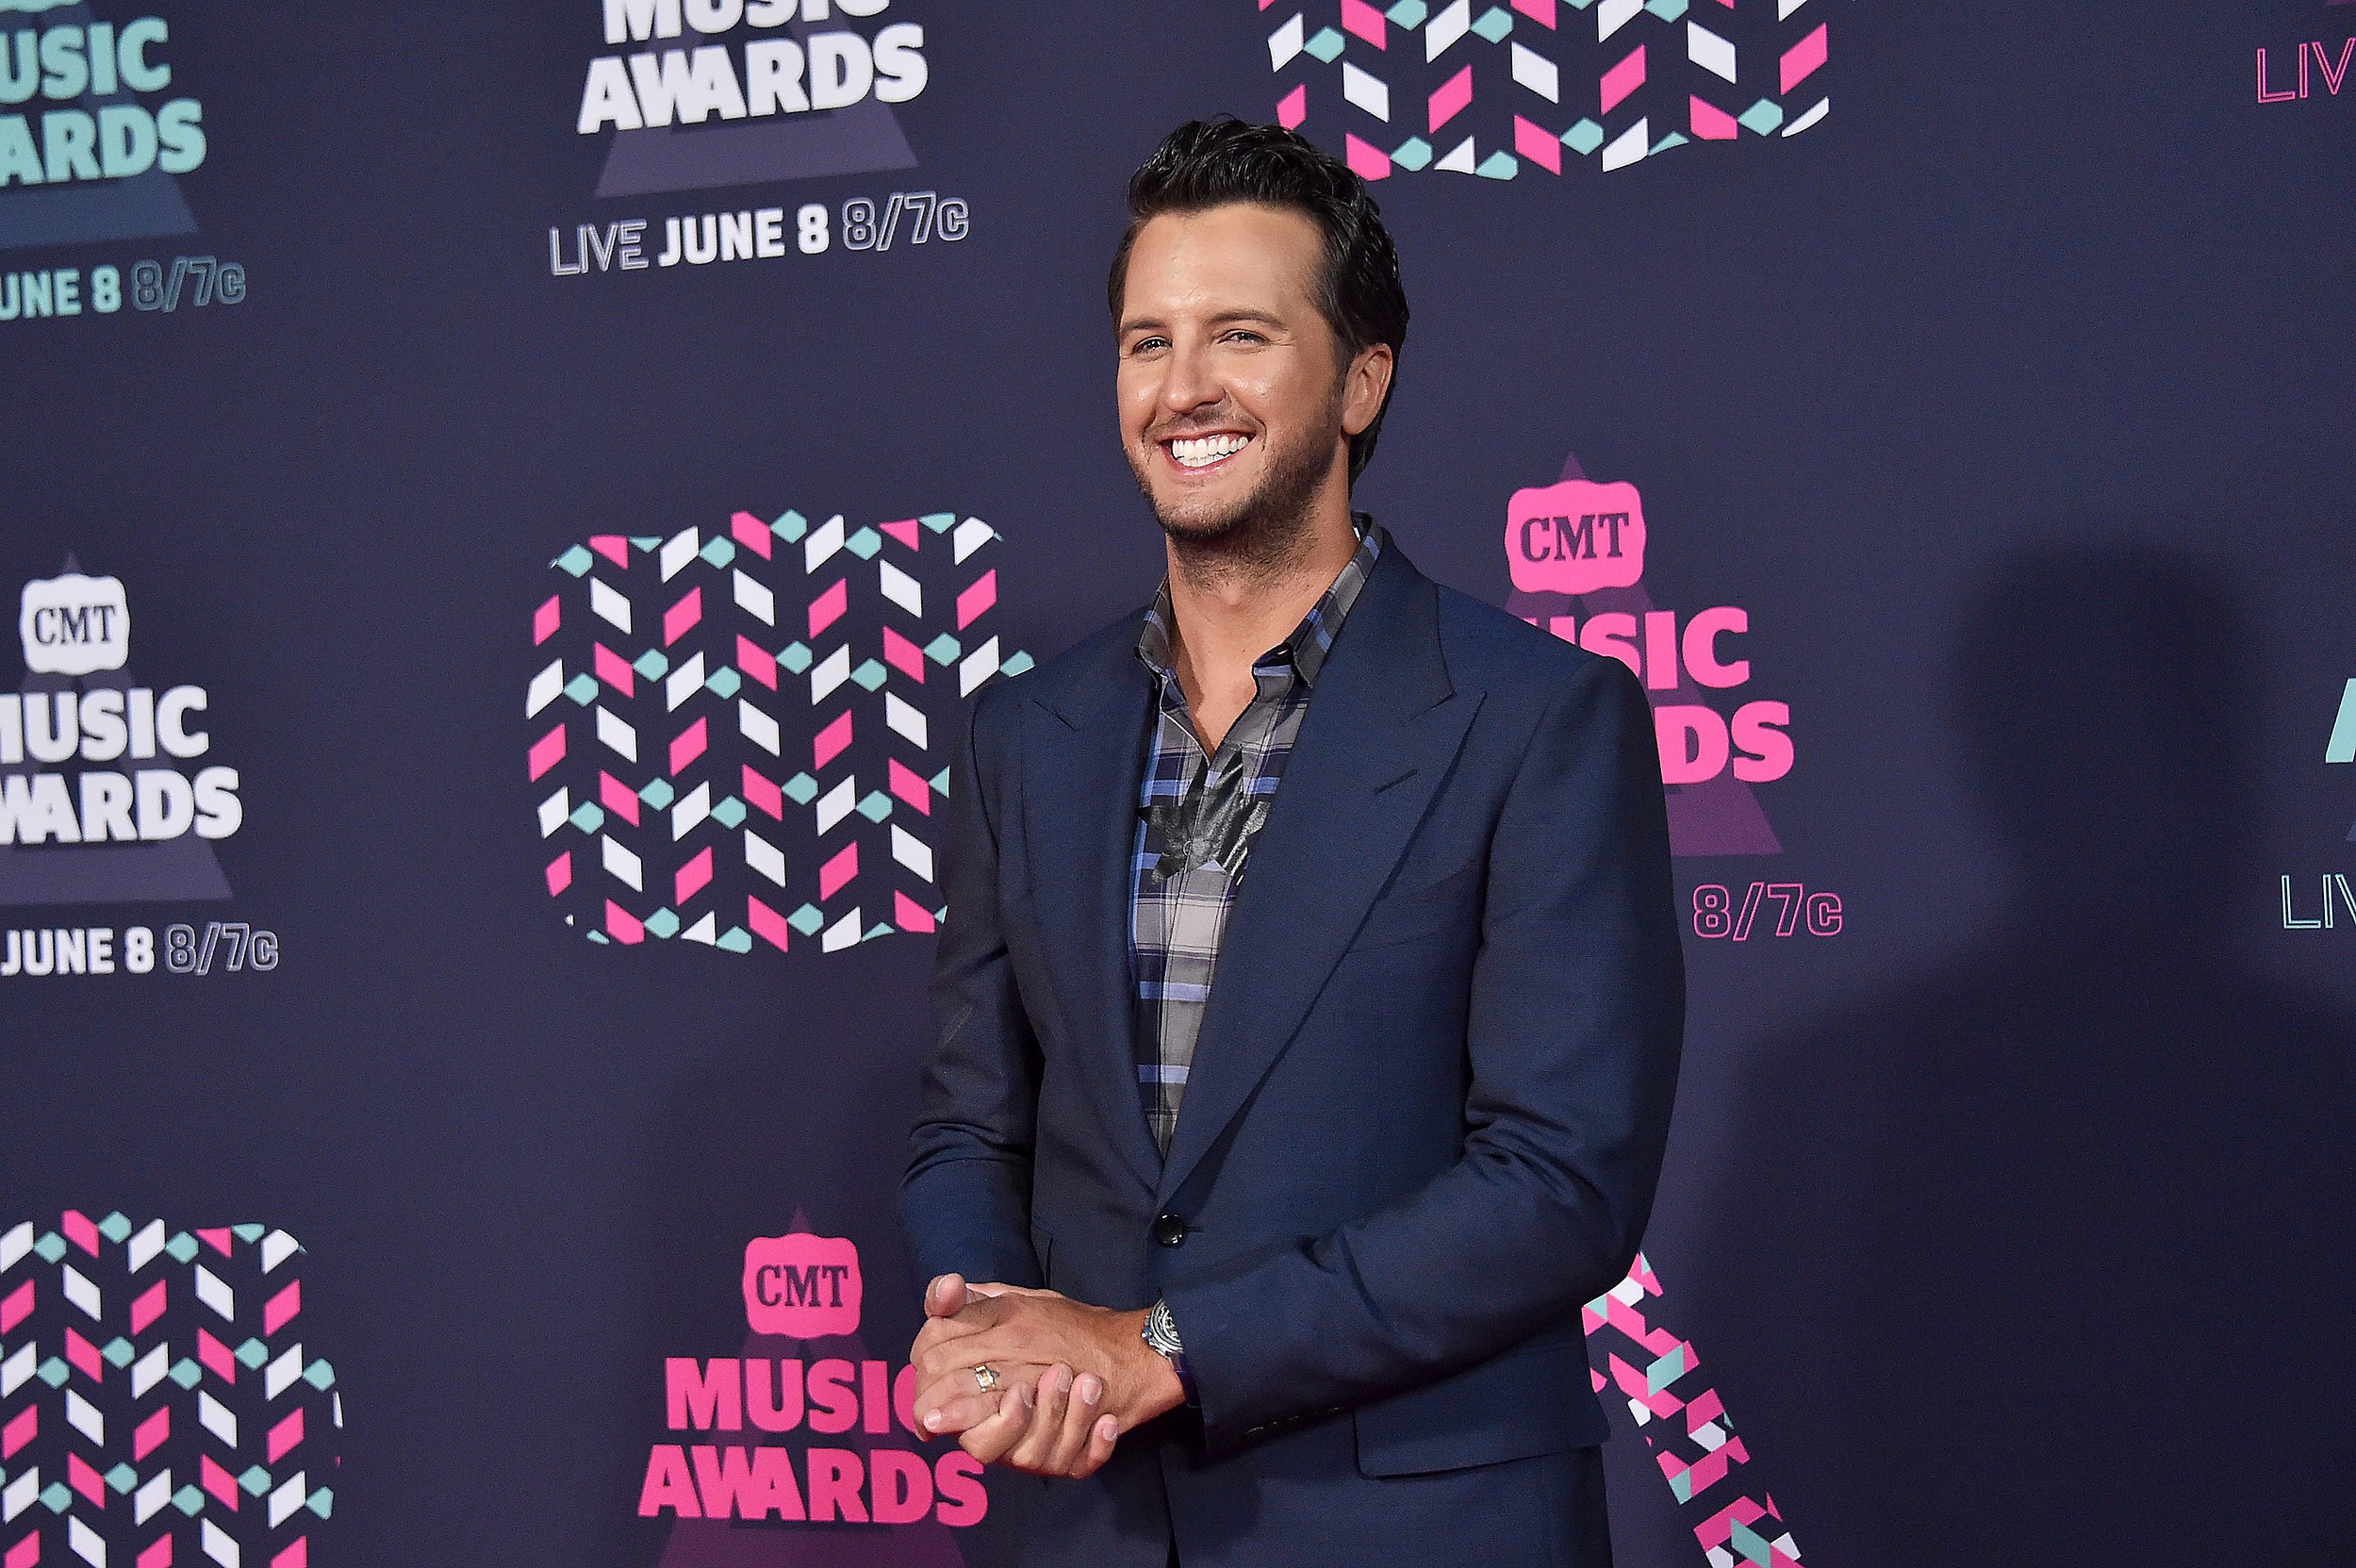 Luke Bryan Will Sing Super Bowl LI National Anthem